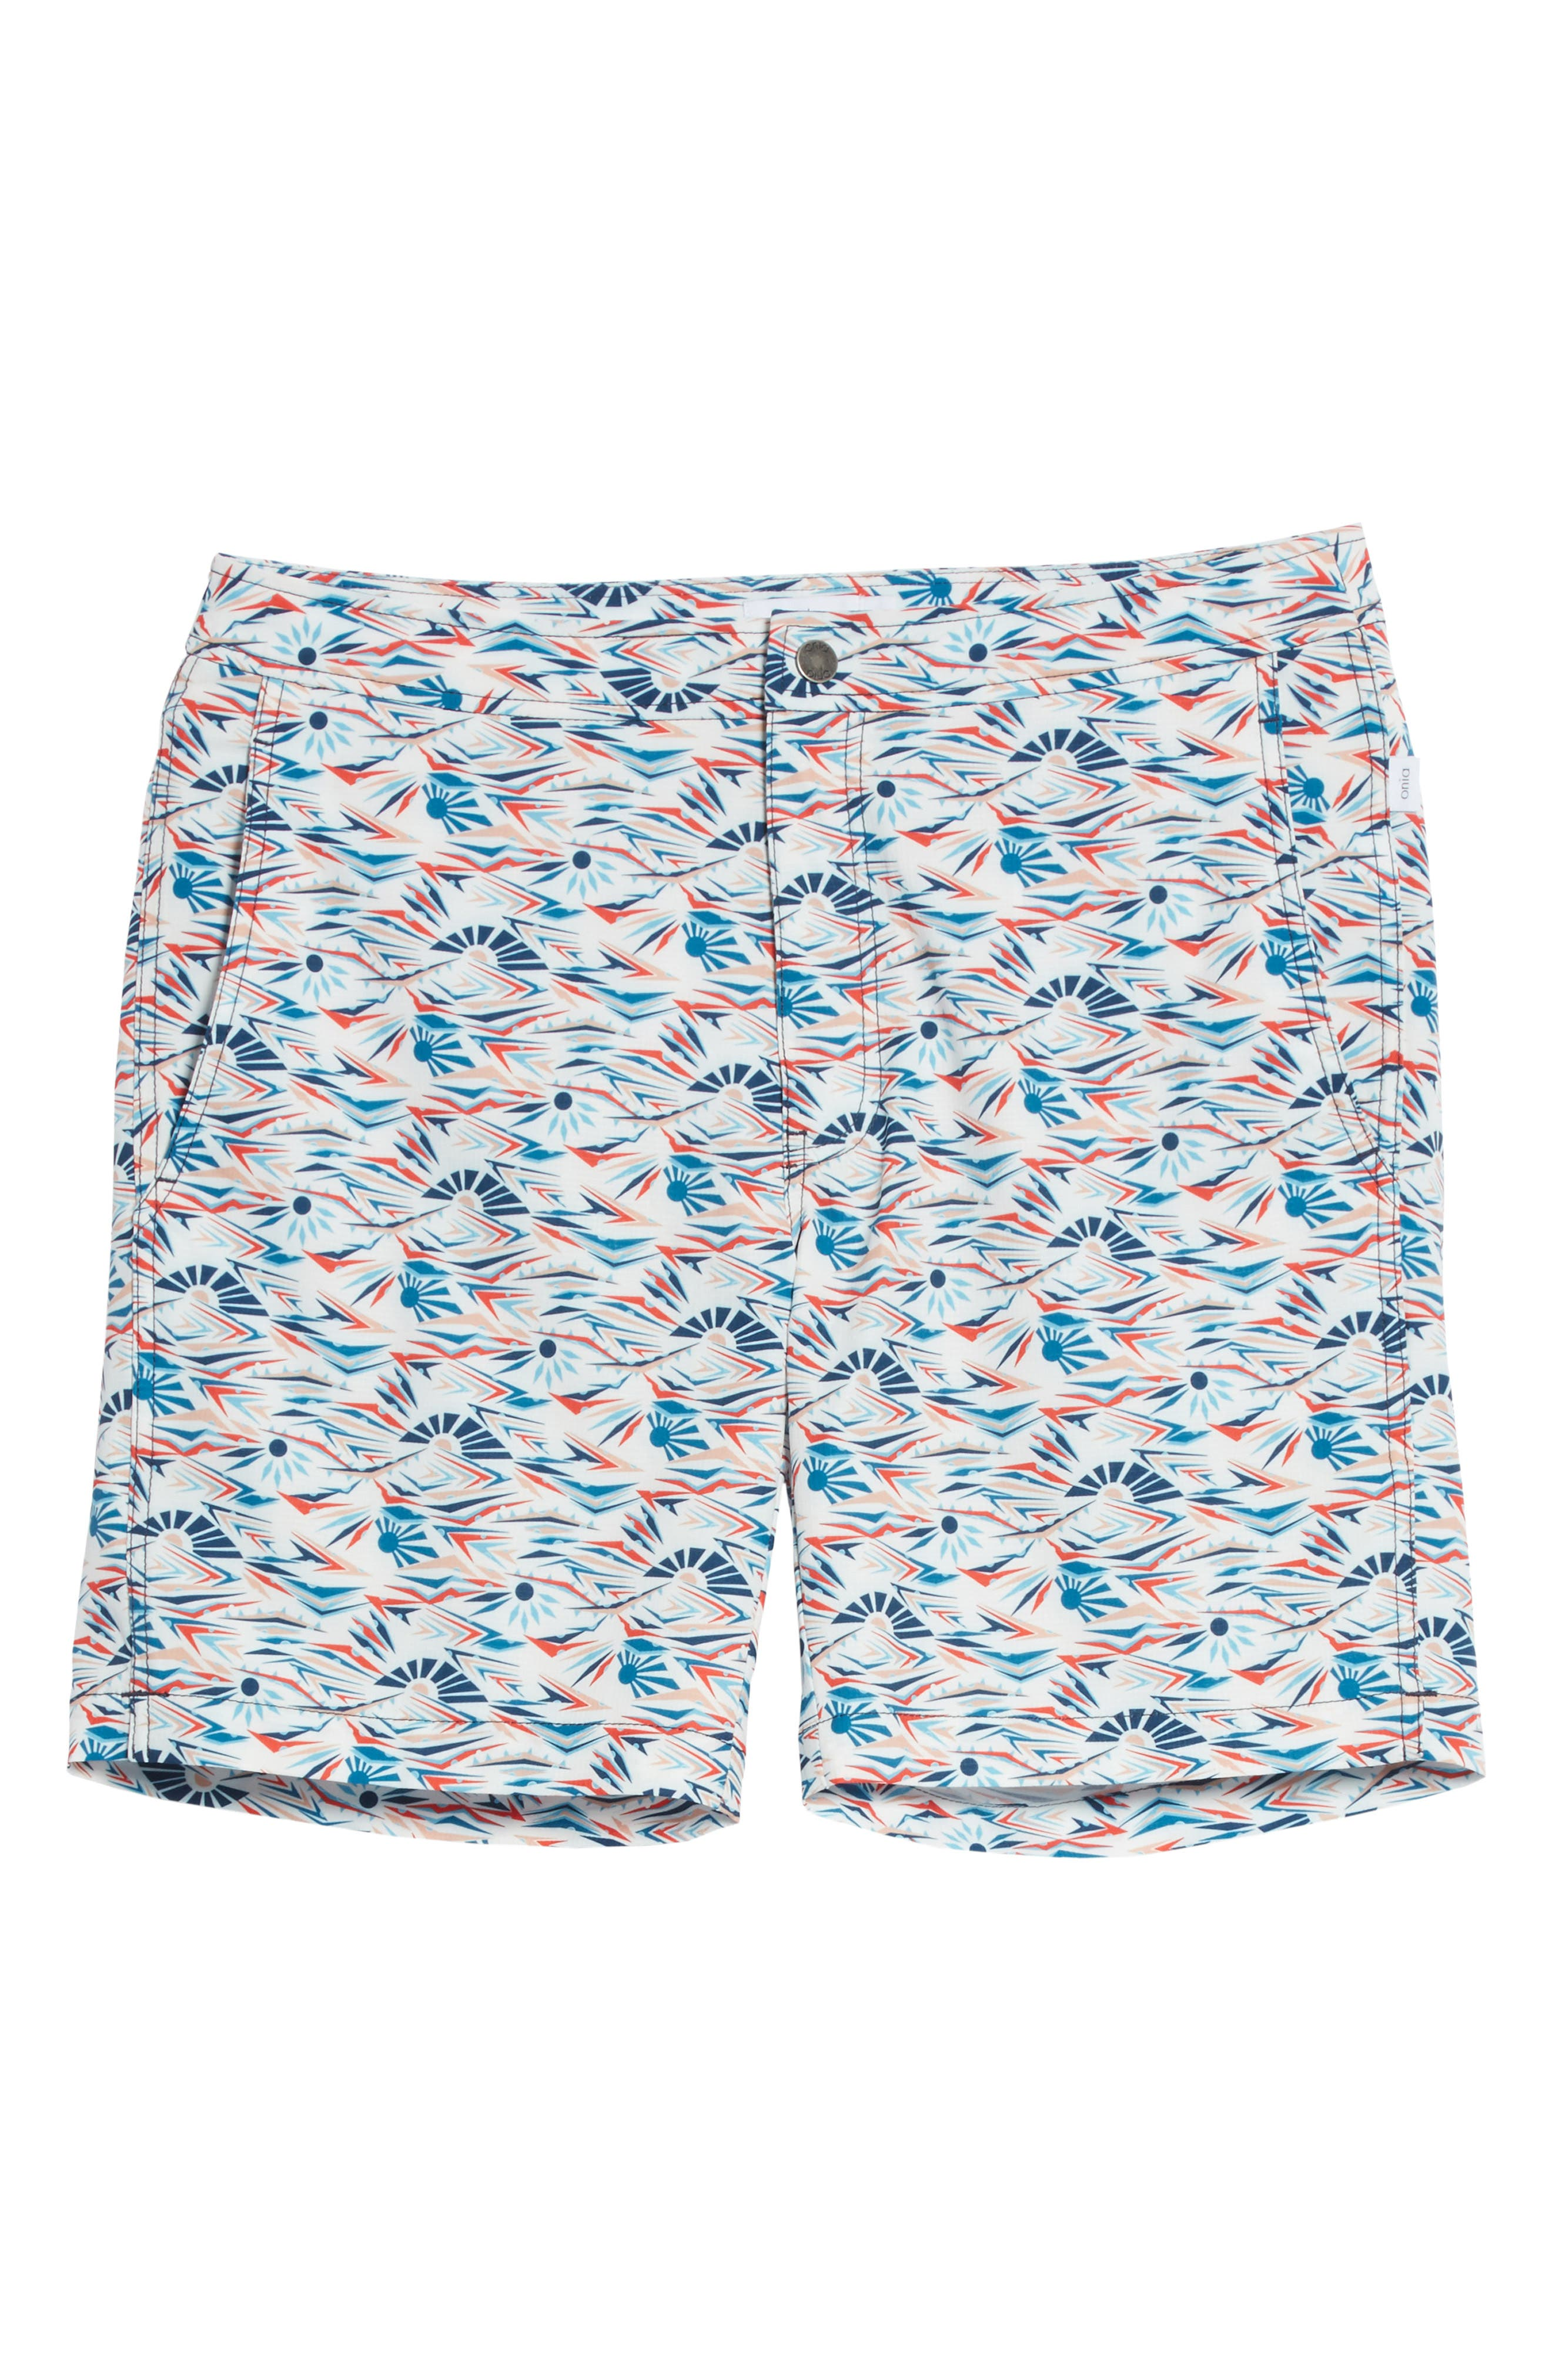 Calder Sunrise Print Swim Trunks,                             Alternate thumbnail 6, color,                             WHITE MULTI